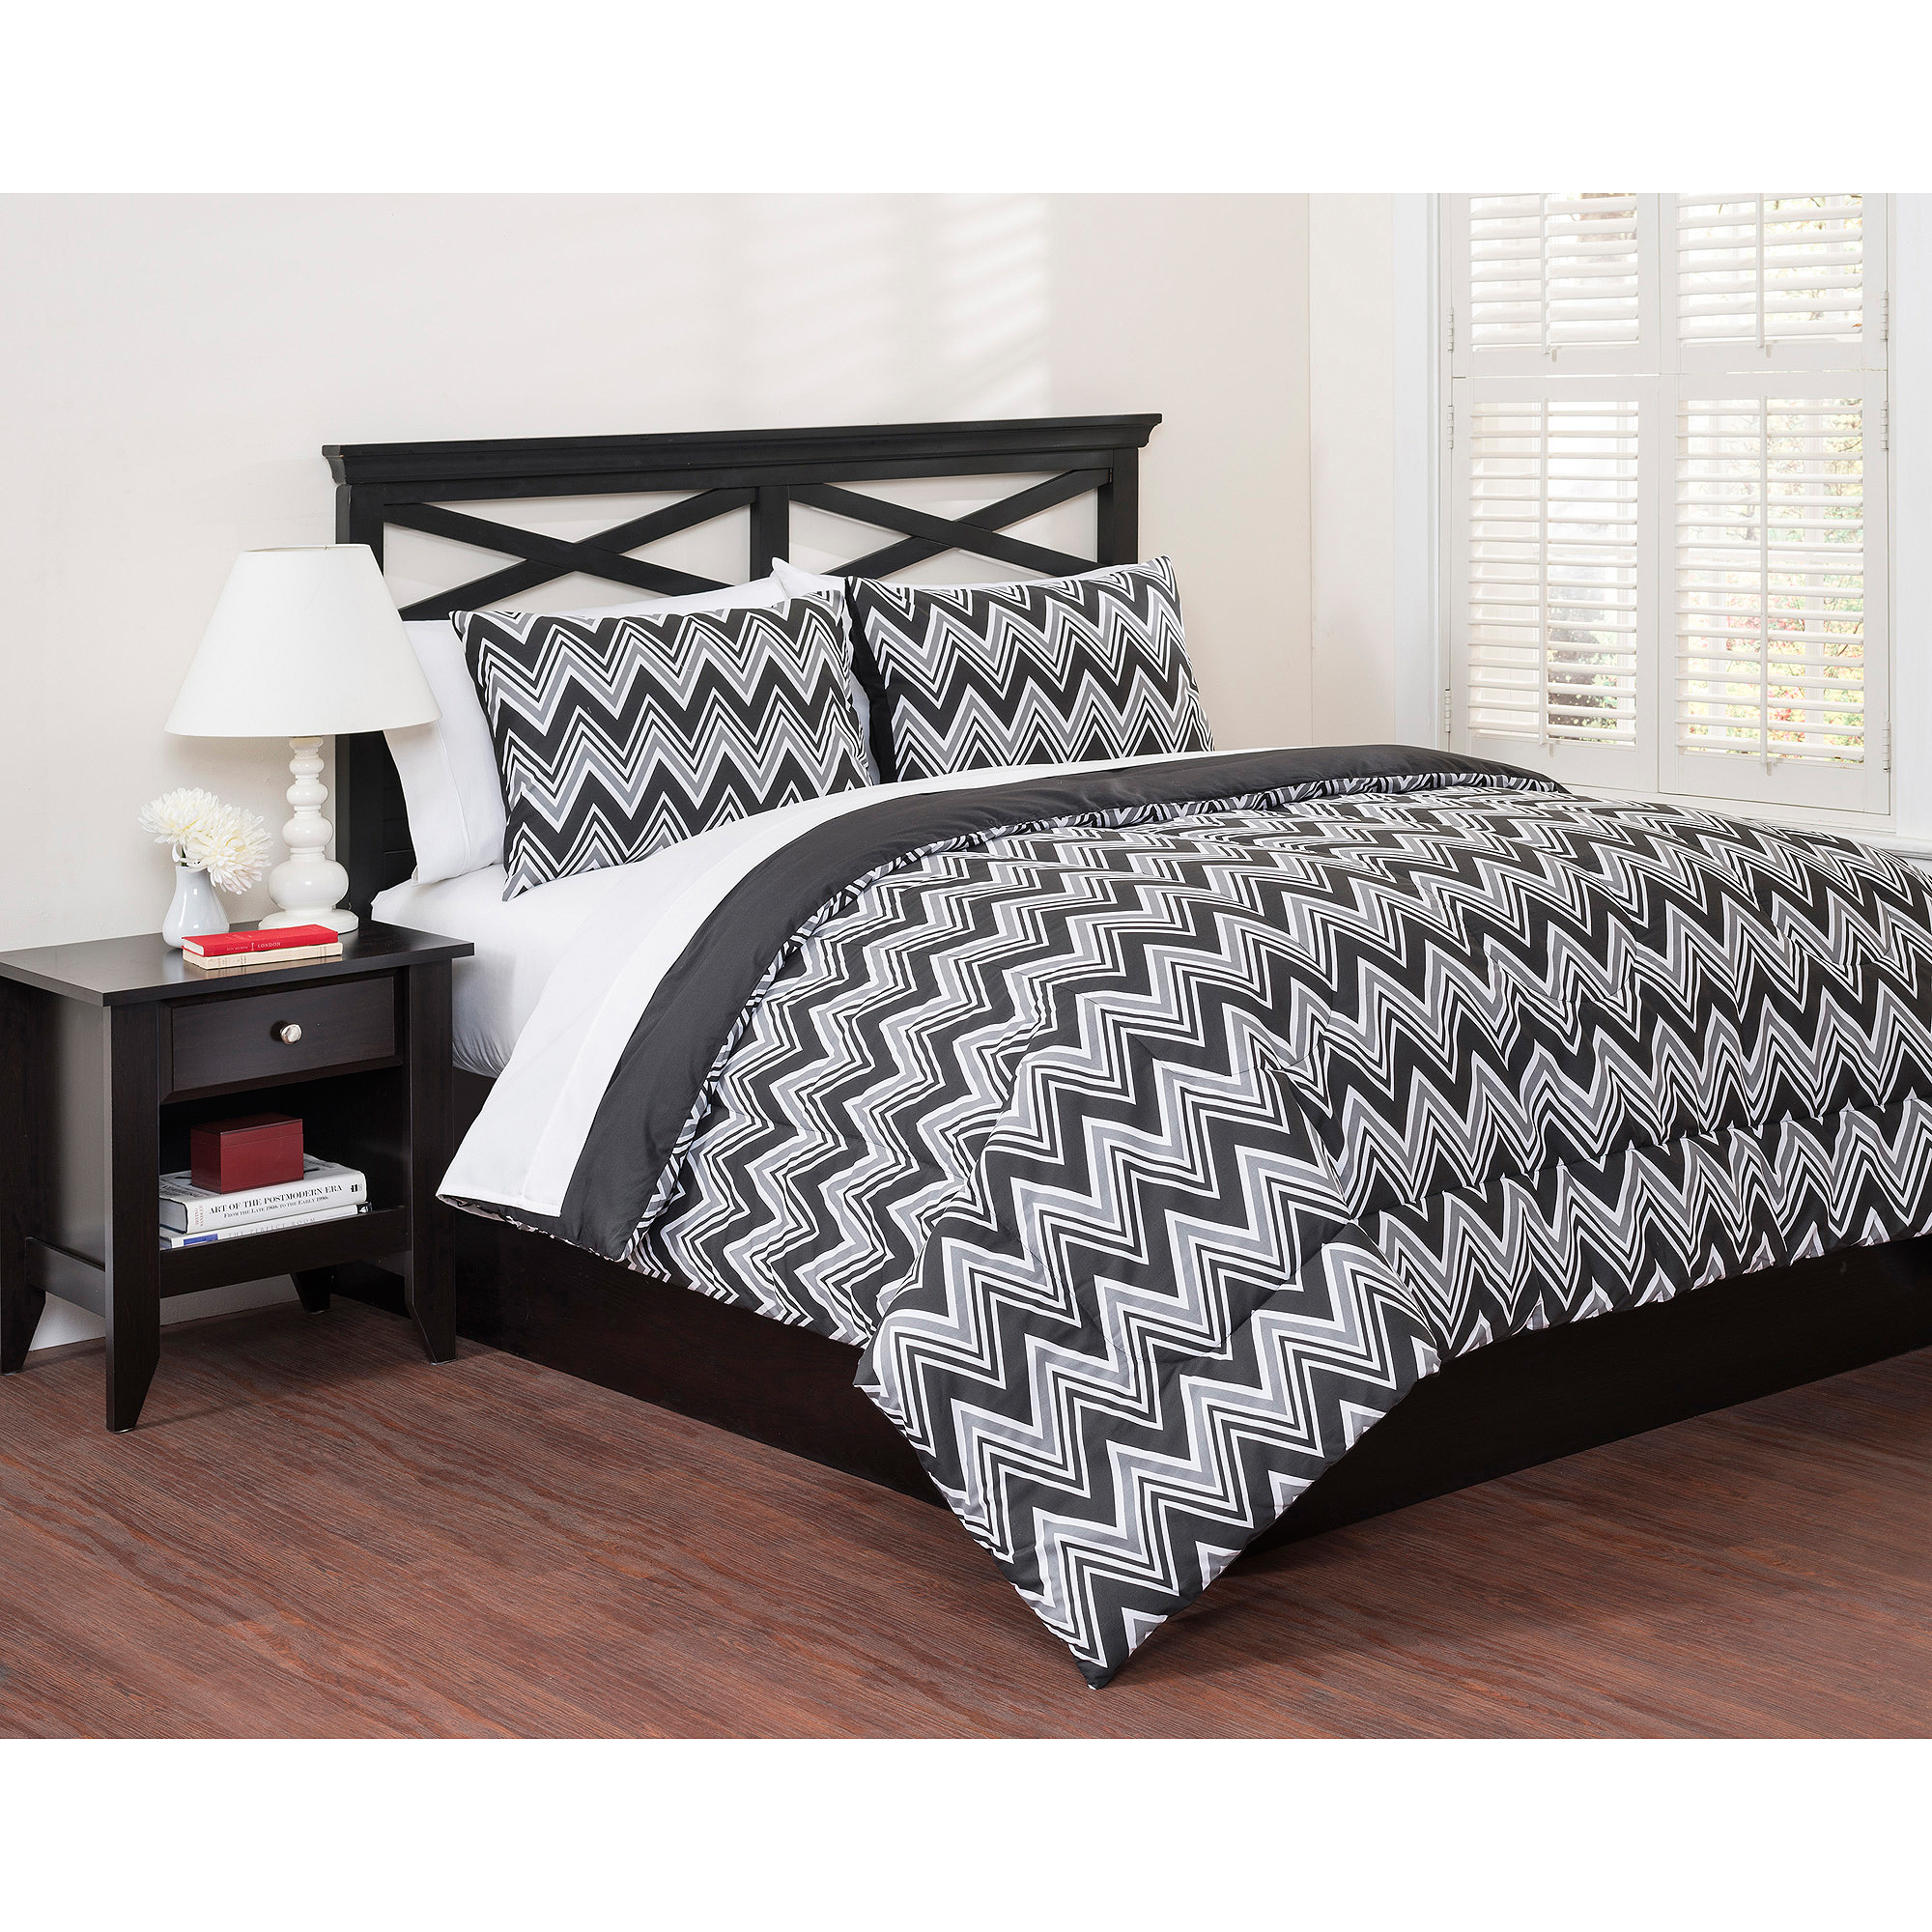 East End Living Classic Chevron 3-Piece Bedding Duvet Set, Black